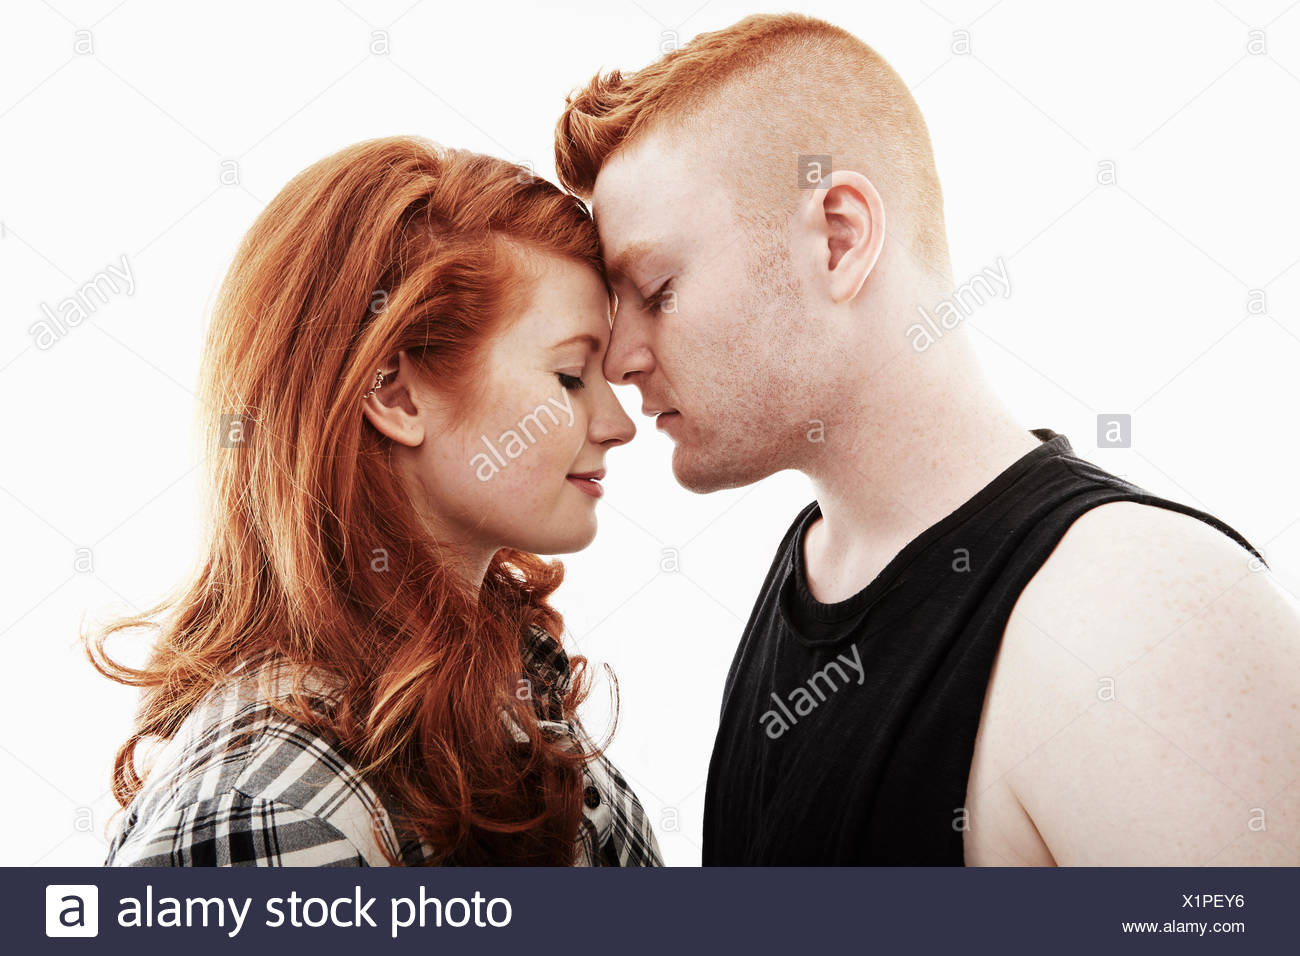 Studio portrait of red haired young couple head to head with eyes closed - Stock Image